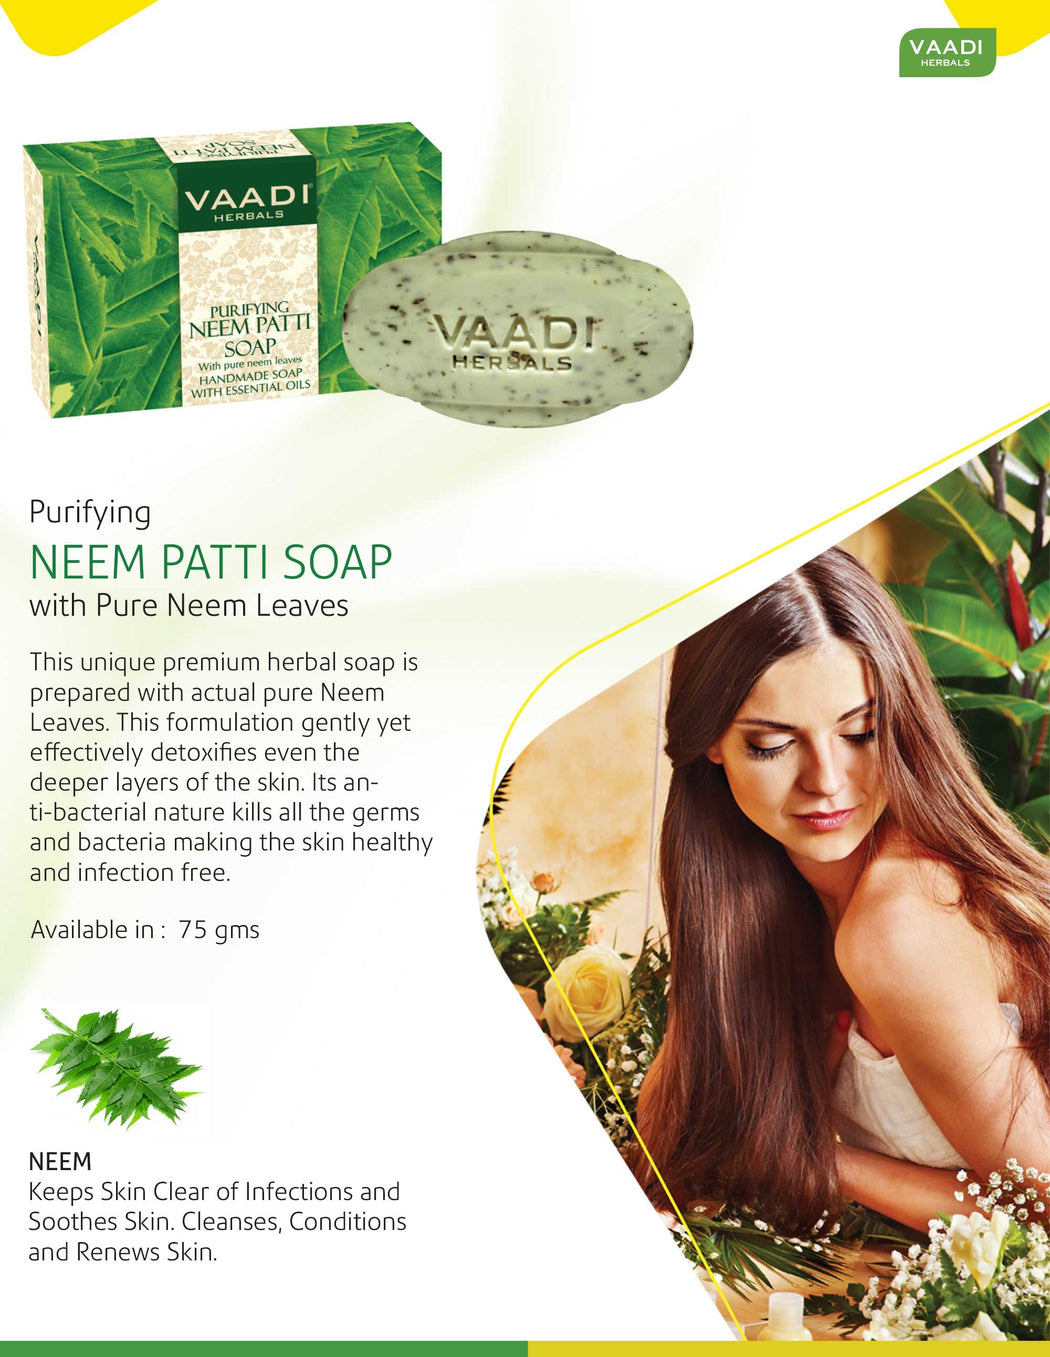 Organic Neem Soap with Pure Neem Leaves (Neem Patti) - Detoxifies Skin (75 gms / 2.7 oz)